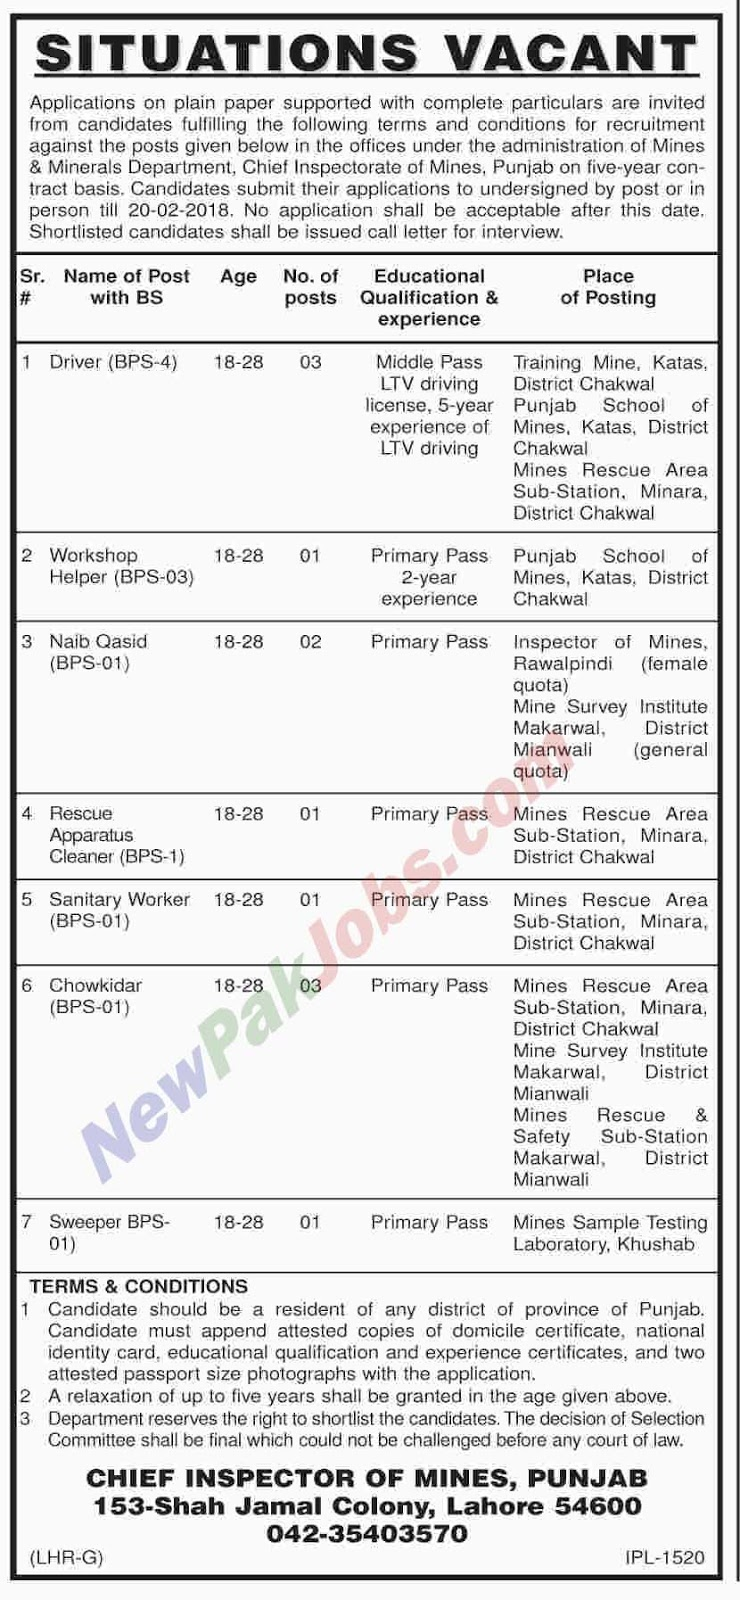 Latest Govt Jobs announced in Mines and Minerals Department Feb 2018